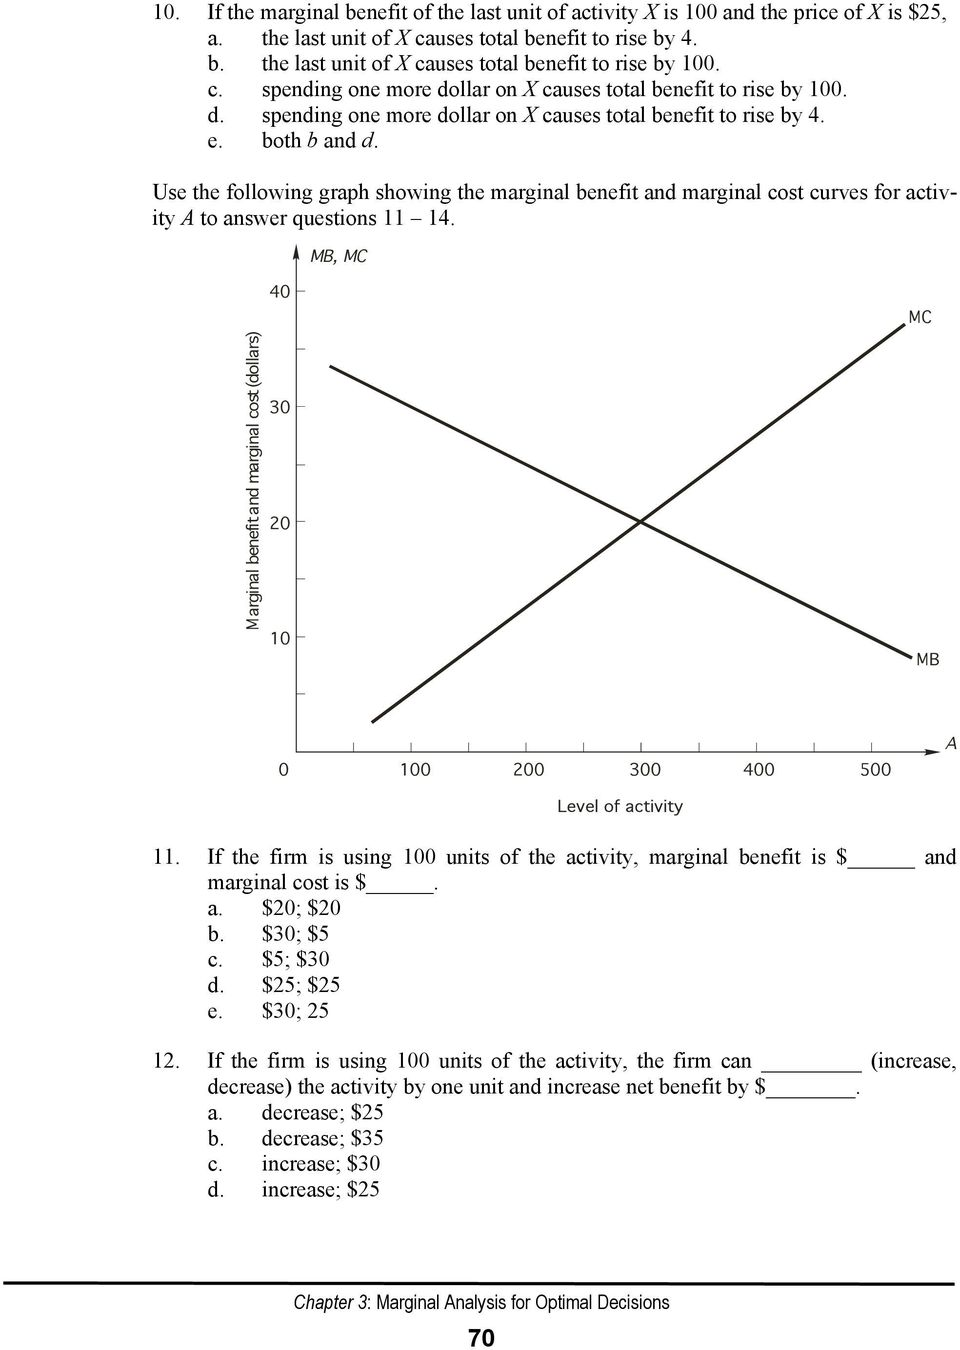 Use the following graph showing the marginal benefit and marginal cost curves for activity A to answer questions 11 14.